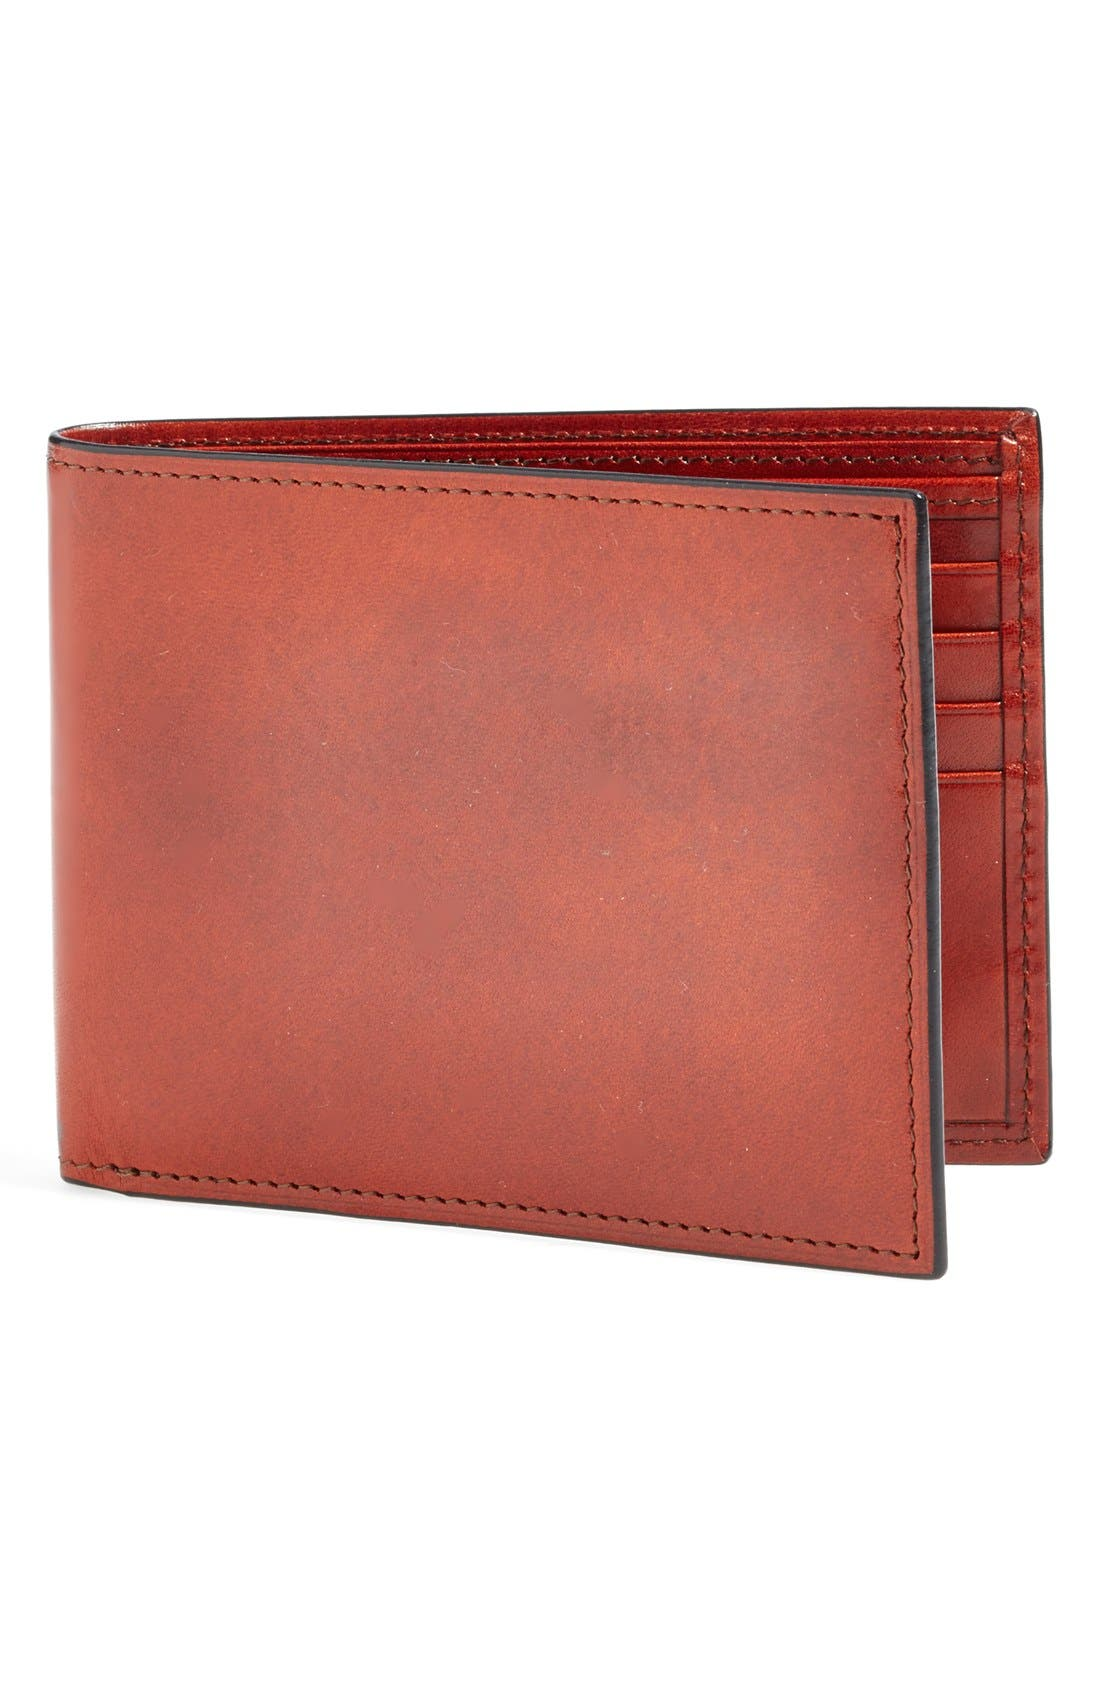 Main Image - Bosca 'Old Leather' Deluxe Wallet